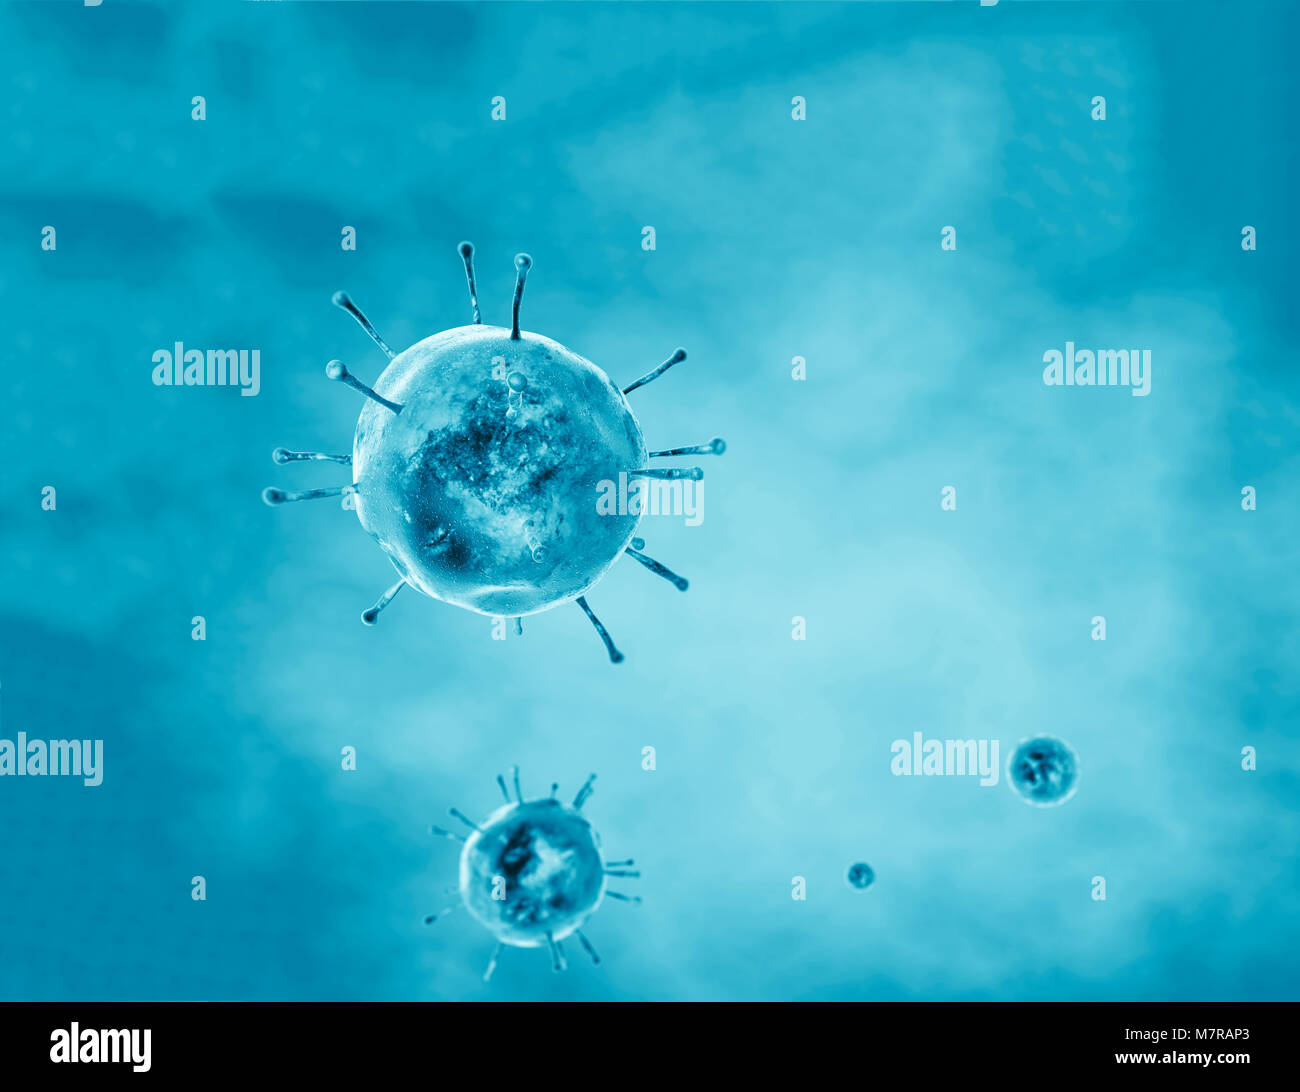 Virus, flu, view of a virus under a microscope, infectious disease - Stock Image